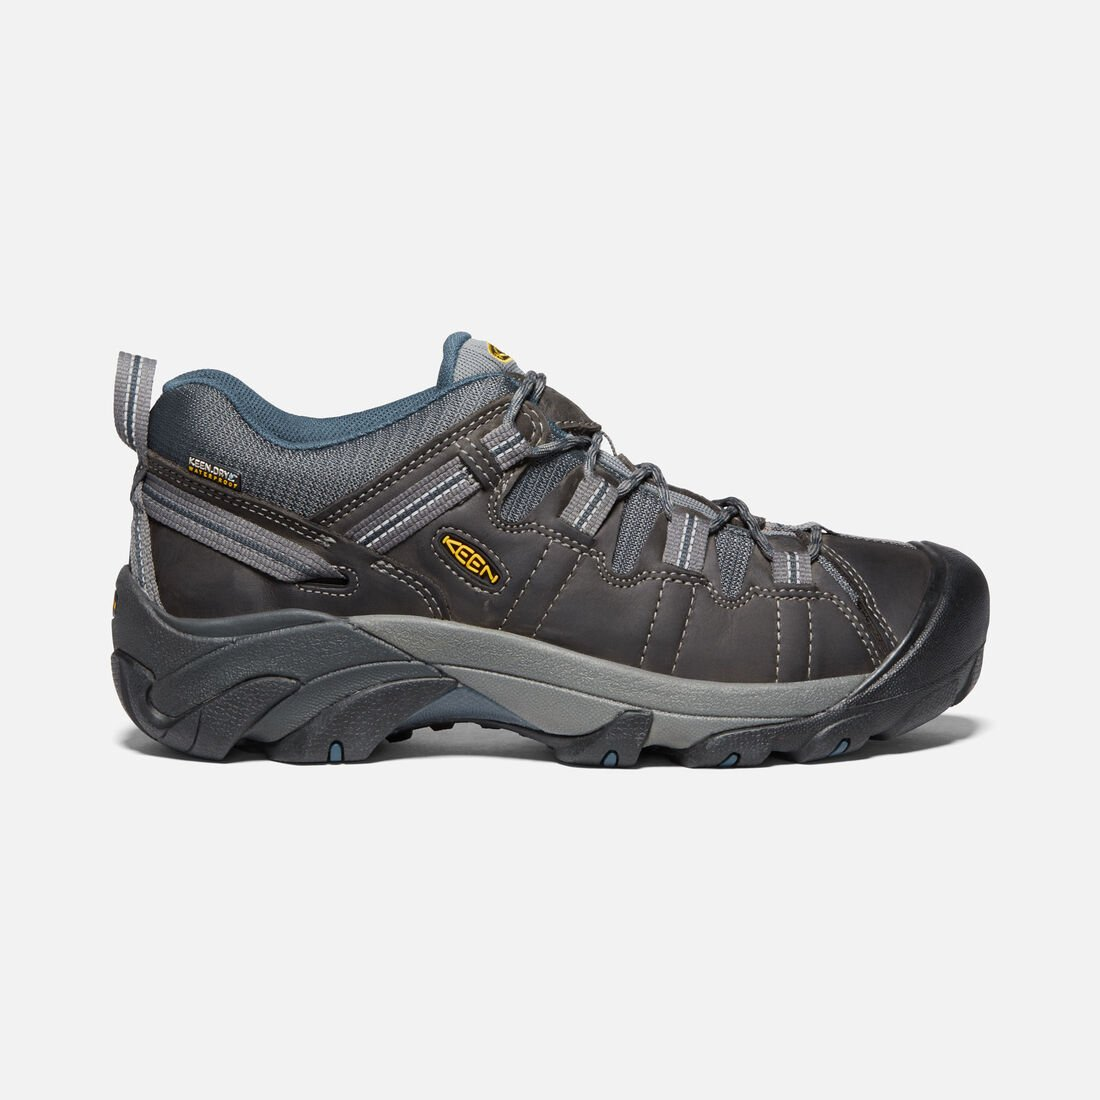 7e7e7908182 Men's Targhee II Waterproof Hiking Shoes | KEEN Footwear